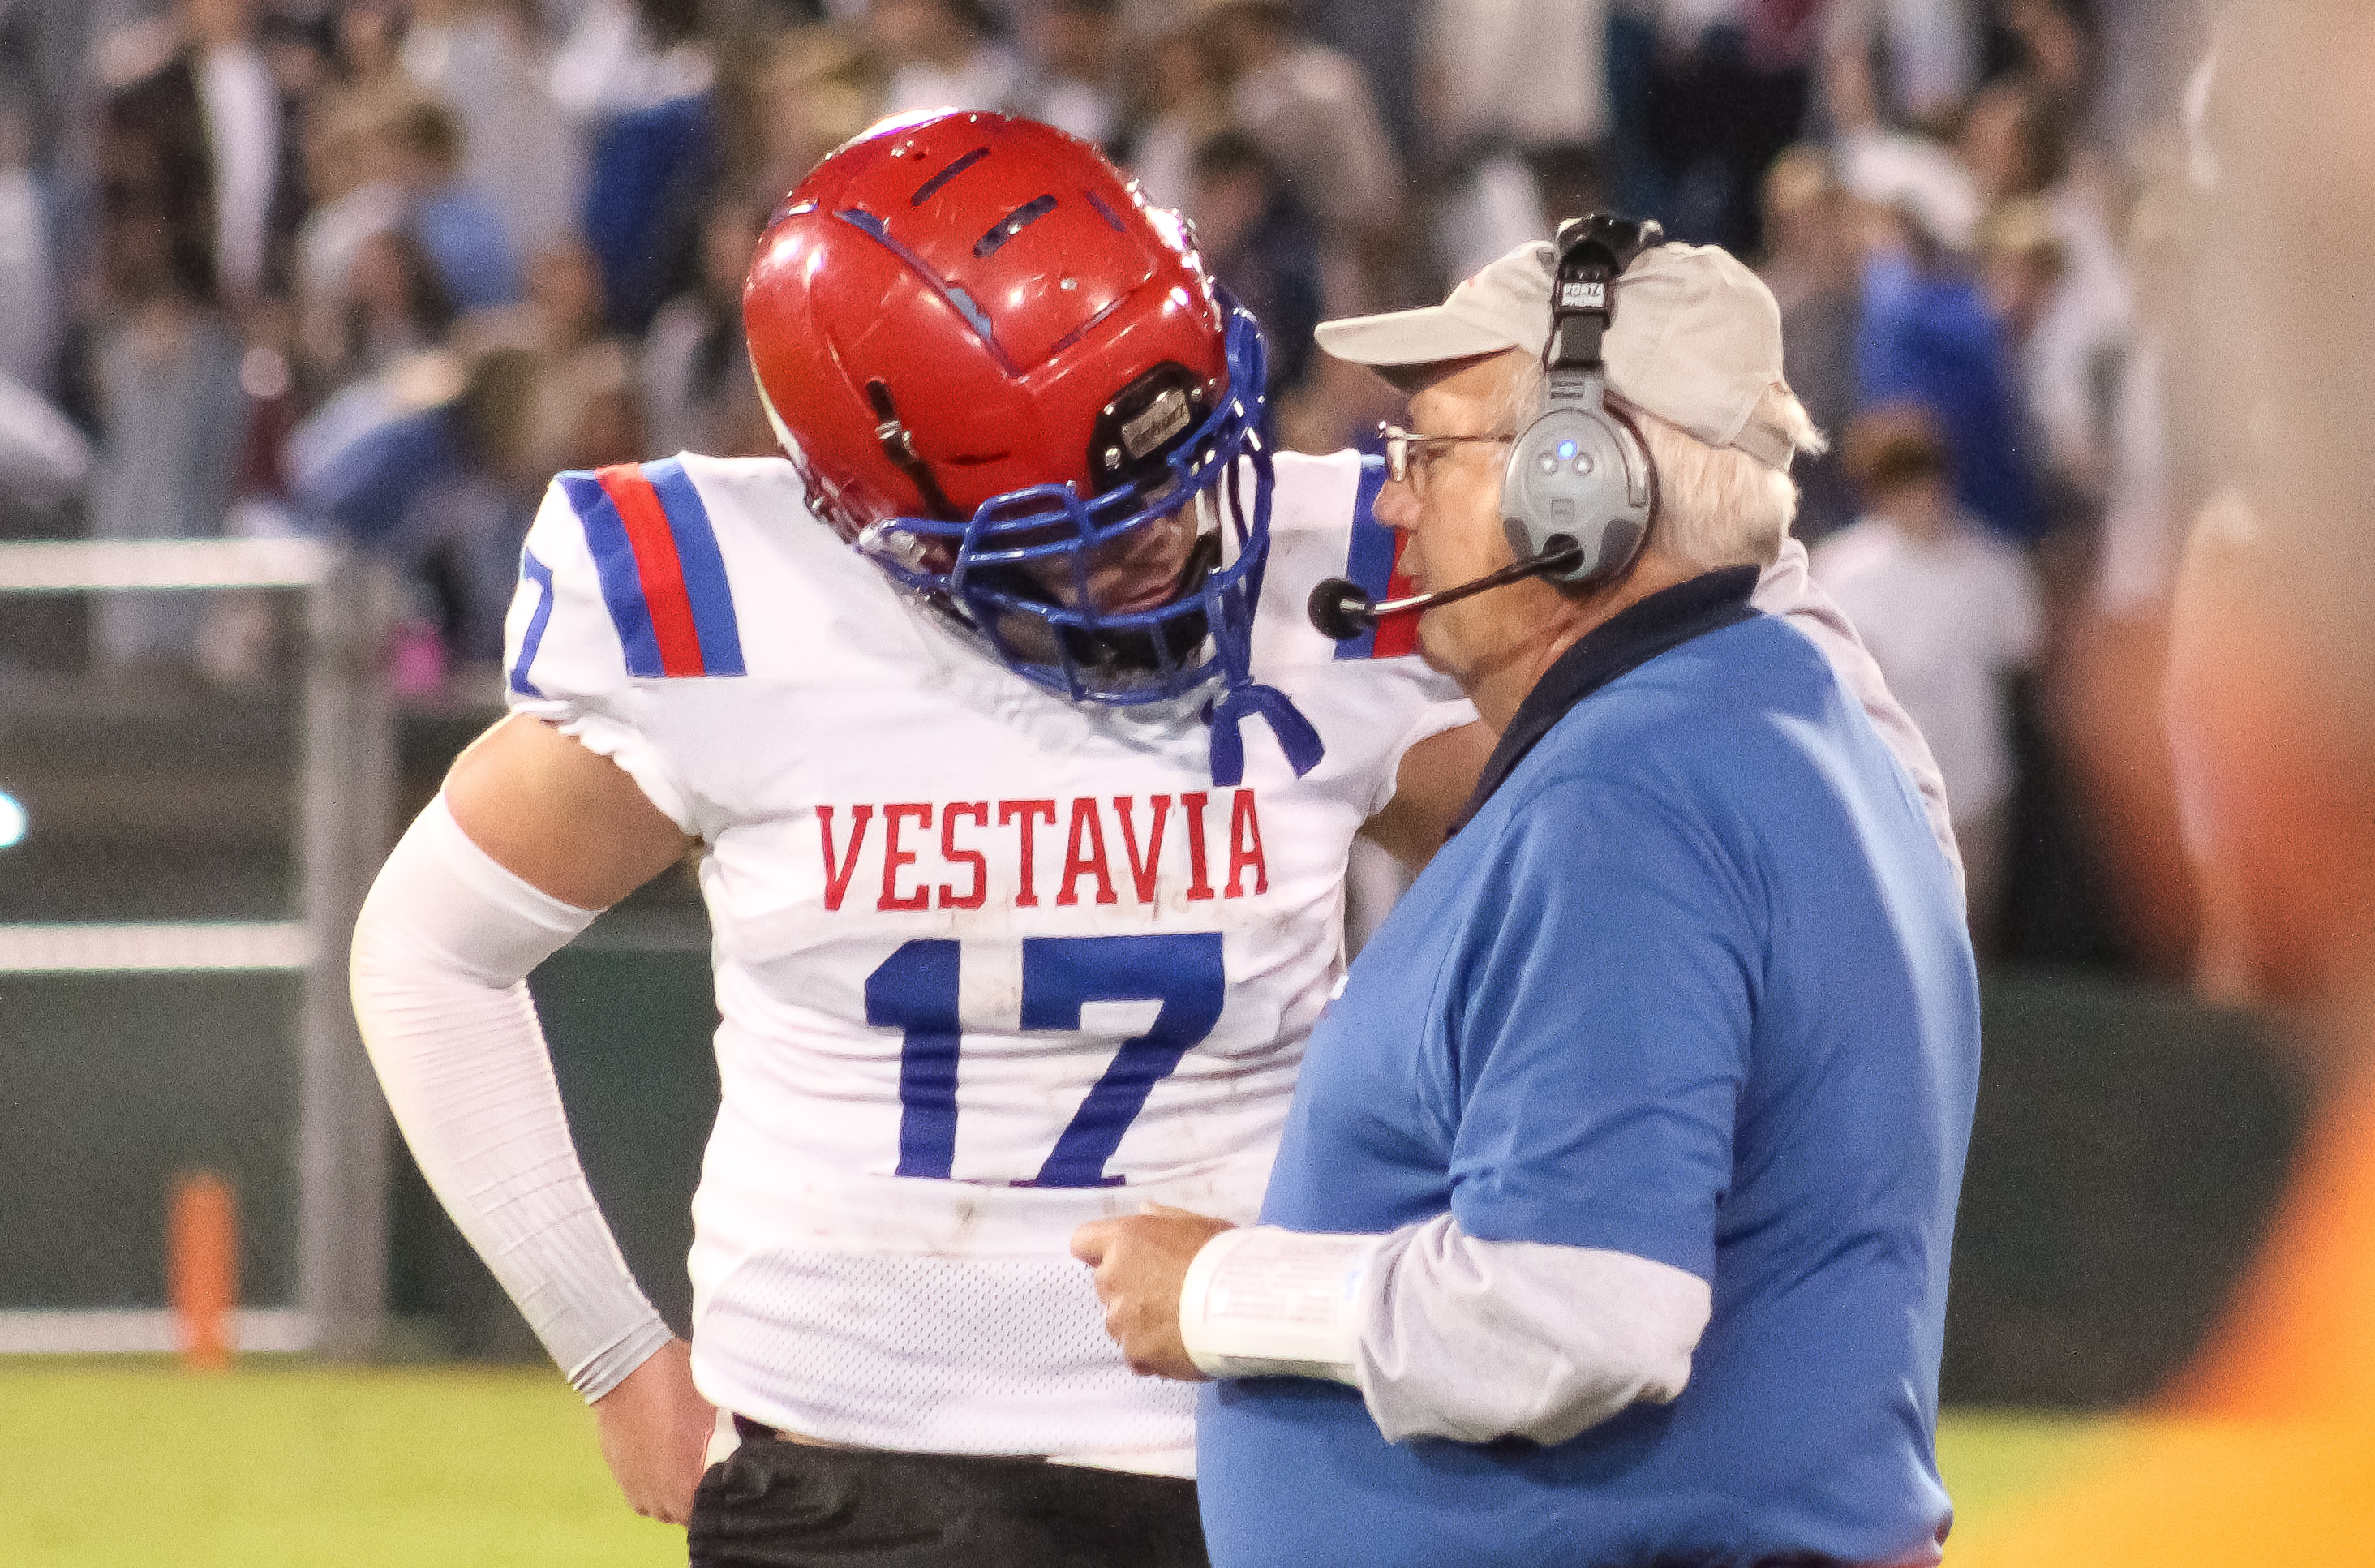 Vestavia QB Eli Sawyer & head coach Buddy Anderson